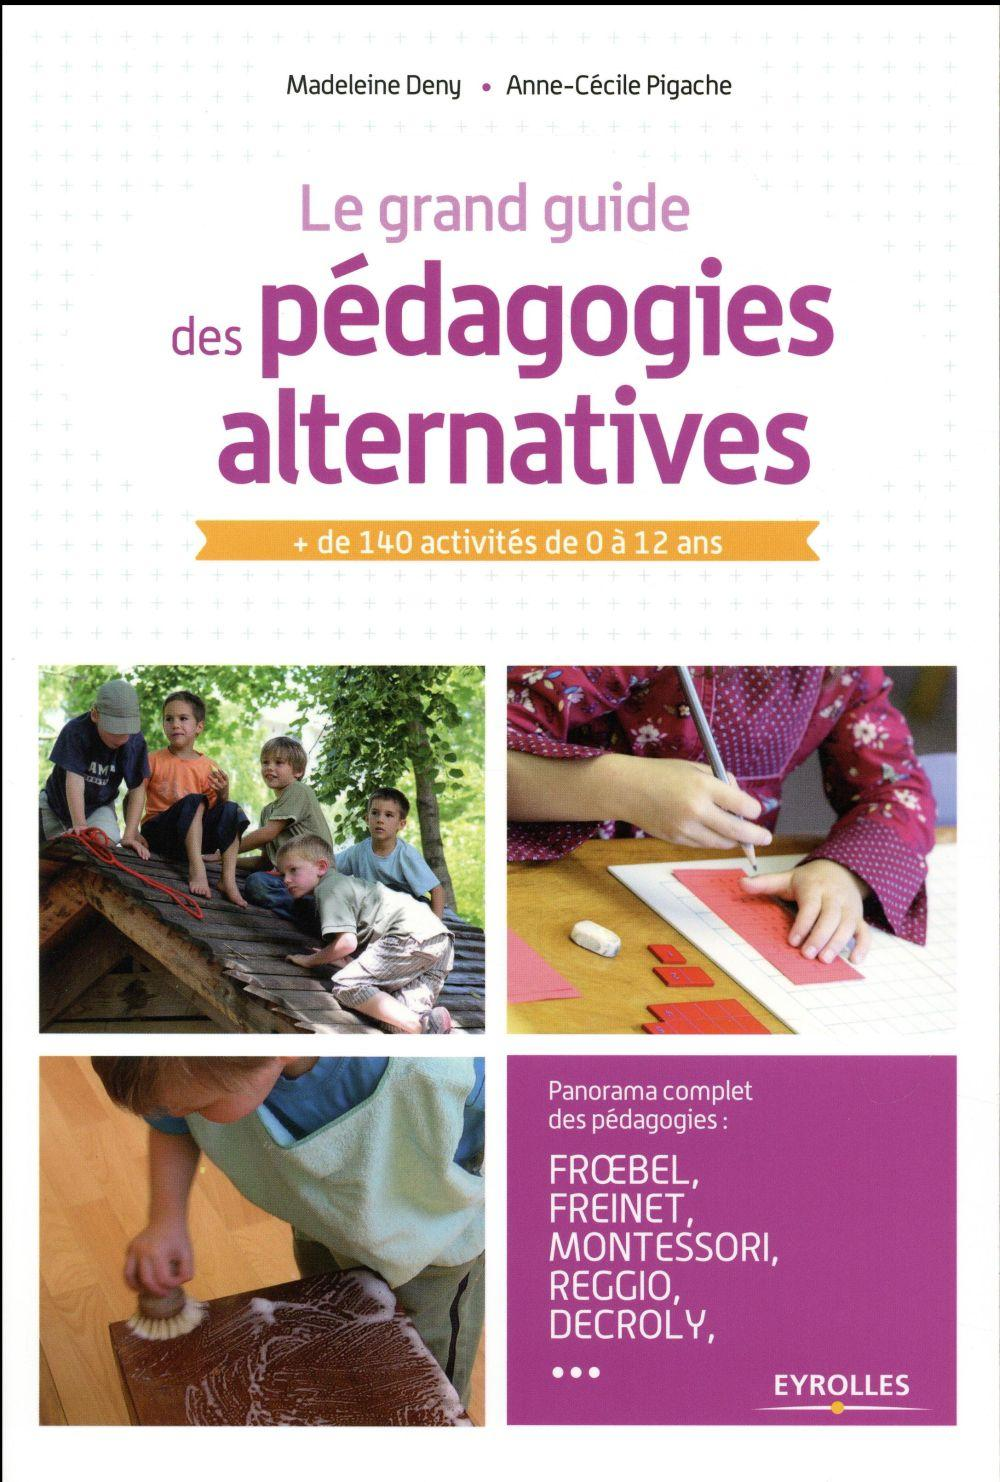 Vente  Le grand guide des pédagogies alternatives  - Madeleine Deny  - Deny/Pigache  - Anne-Cecile Pigache